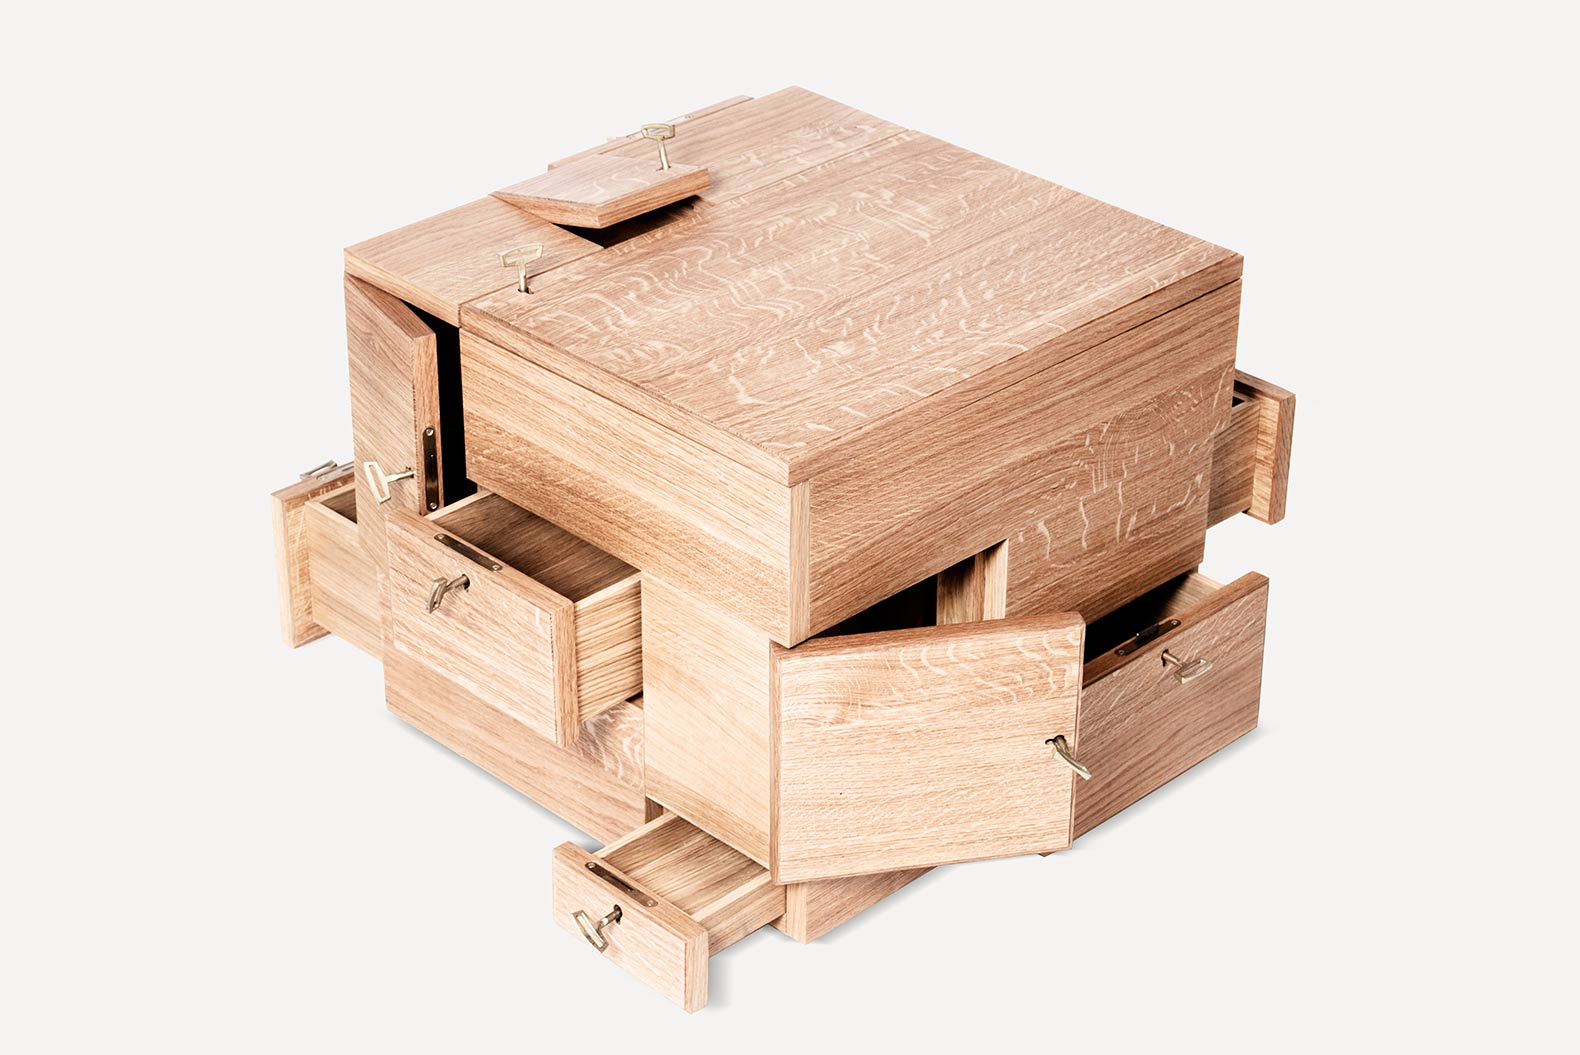 5 Dicas Utilizar Pallets Decoracao besides 10 Idees Fabriquer Table Palettes furthermore Gorgeous Pallet Wood Rolling Bar in addition Famous Last Words besides Floating Picnic Table. on things to make out of pallets